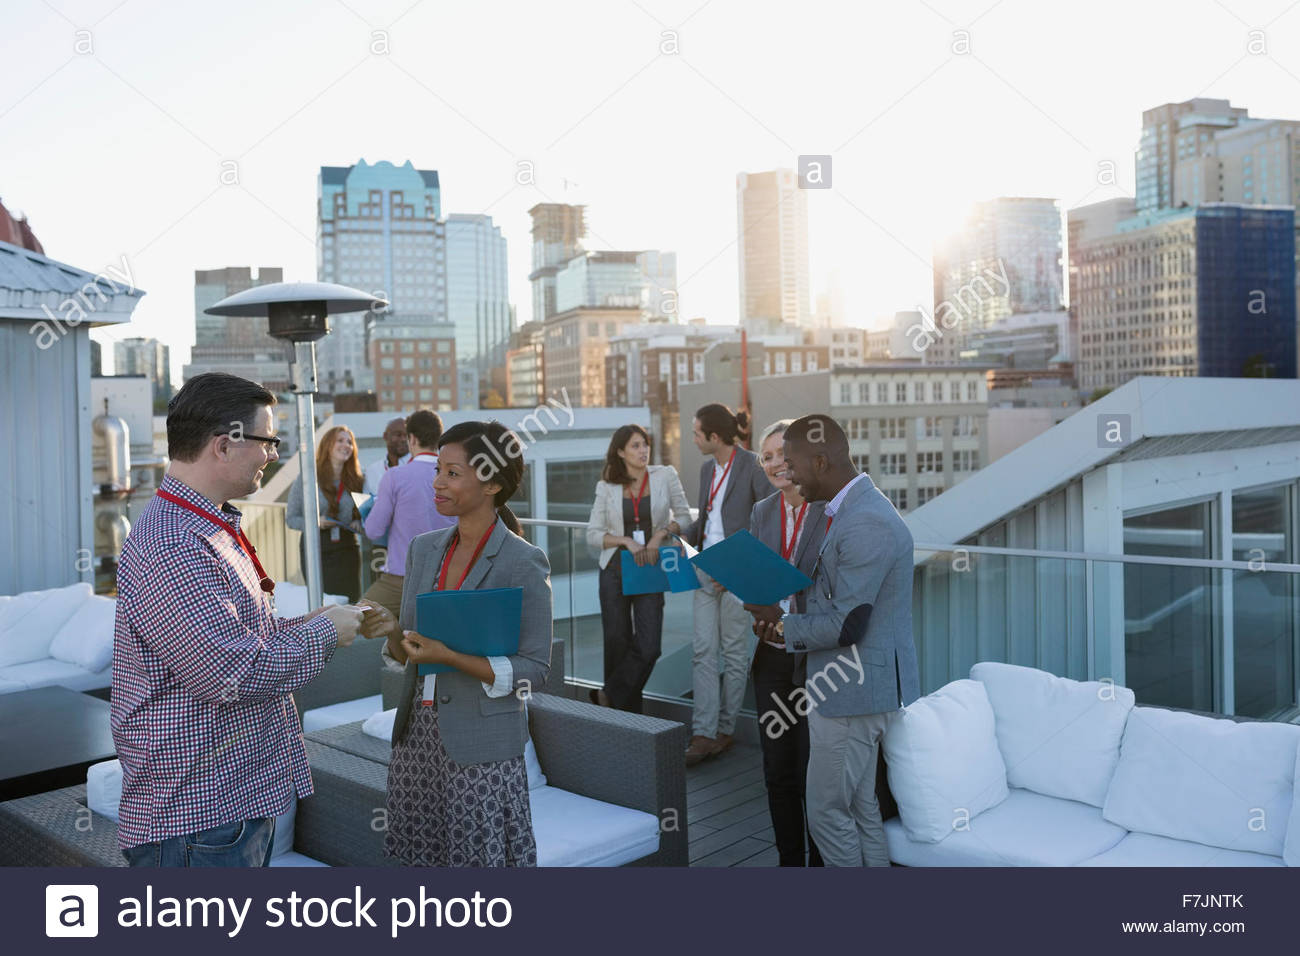 Les gens d'affaires networking on urban rooftop Photo Stock